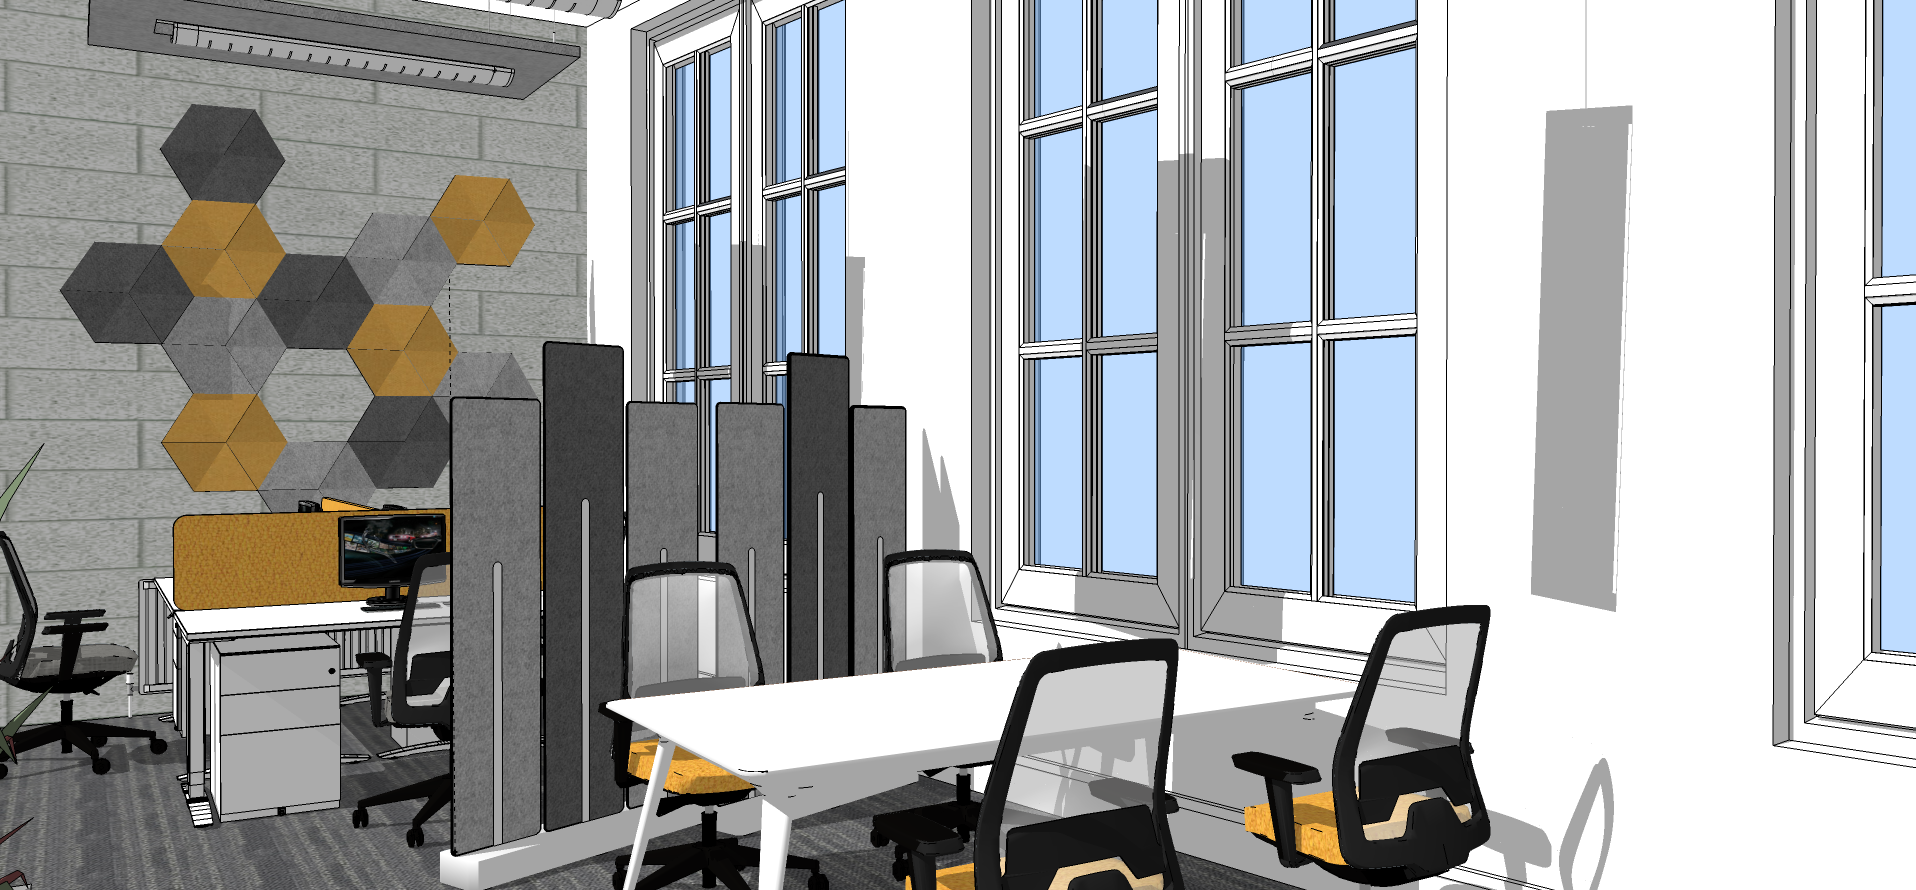 Office interior design visualisation.png